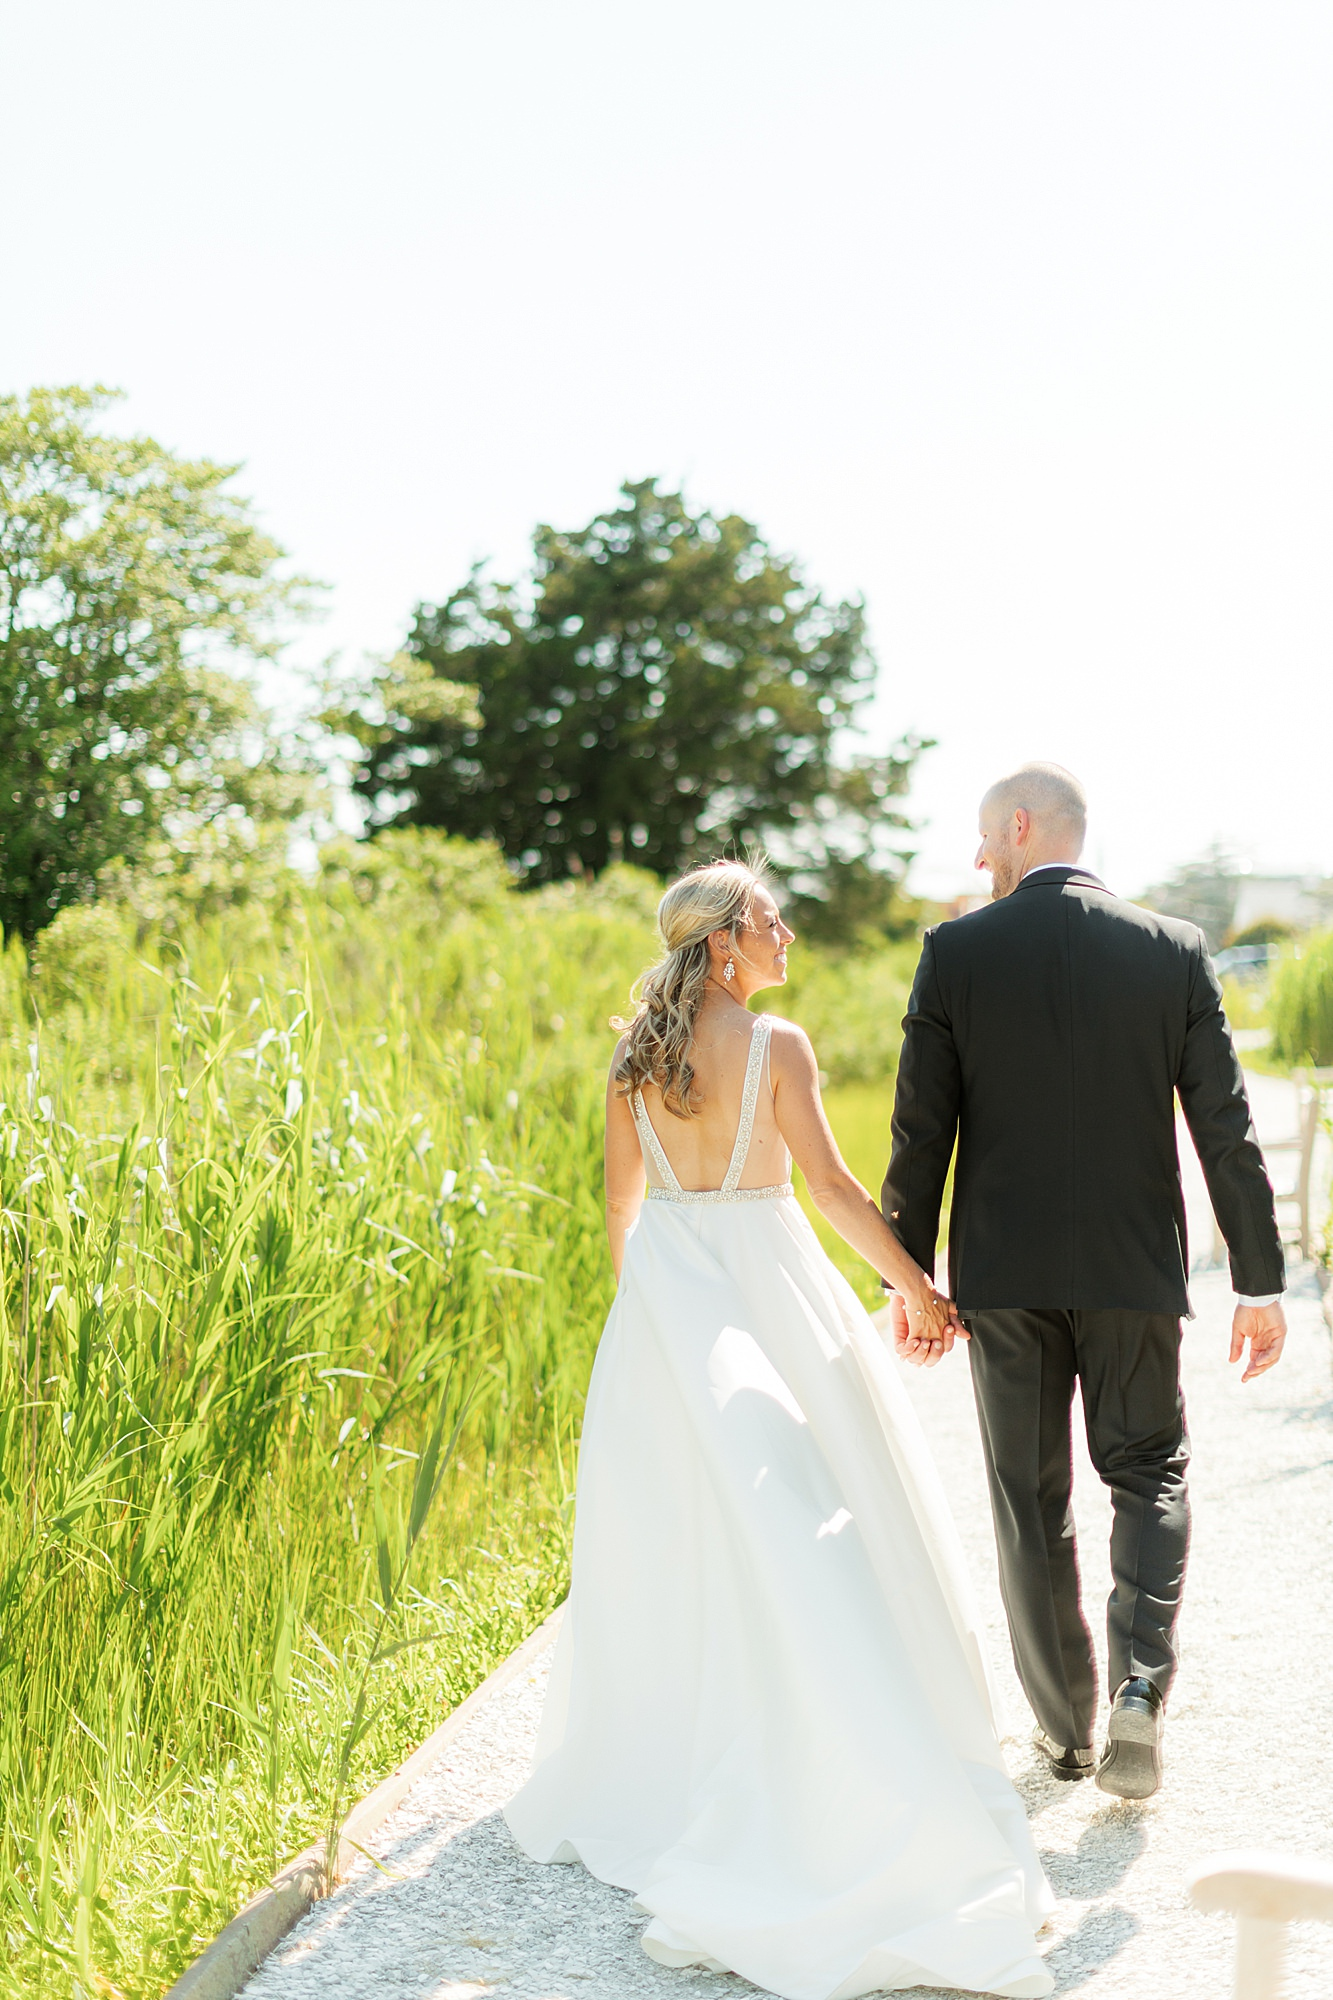 Natural and Vibrant Wedding Photography at the Reeds in Stone Harbor NJ by Magdalena Studios 0037